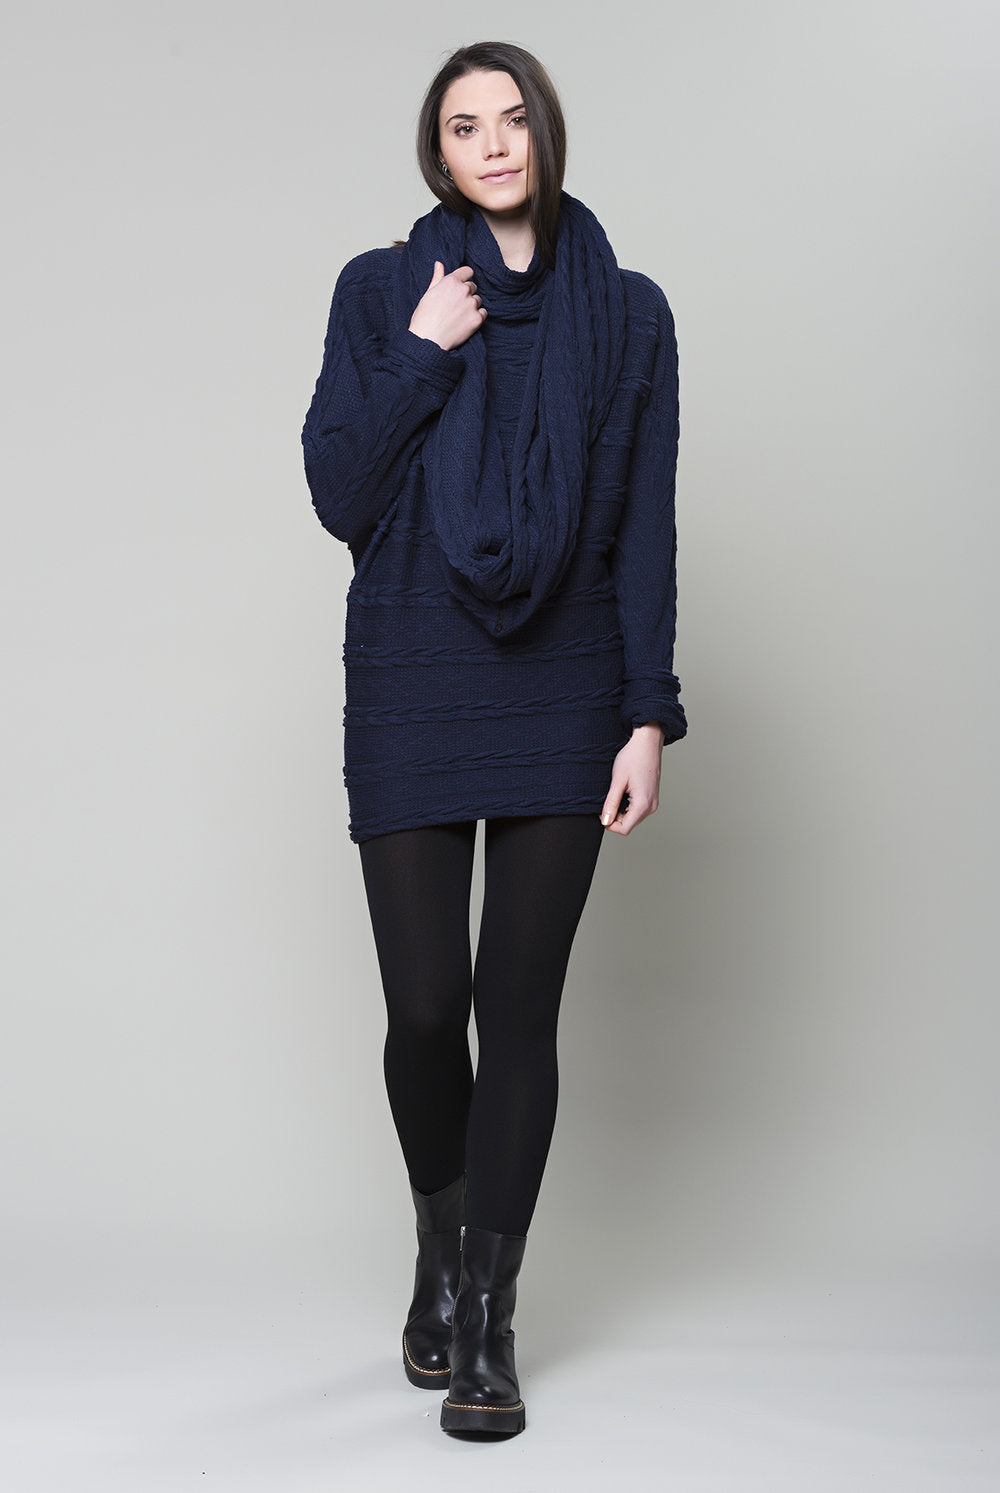 Legend Tunic By Ruelle, FW 20/21 Cable Navy. XS to XL